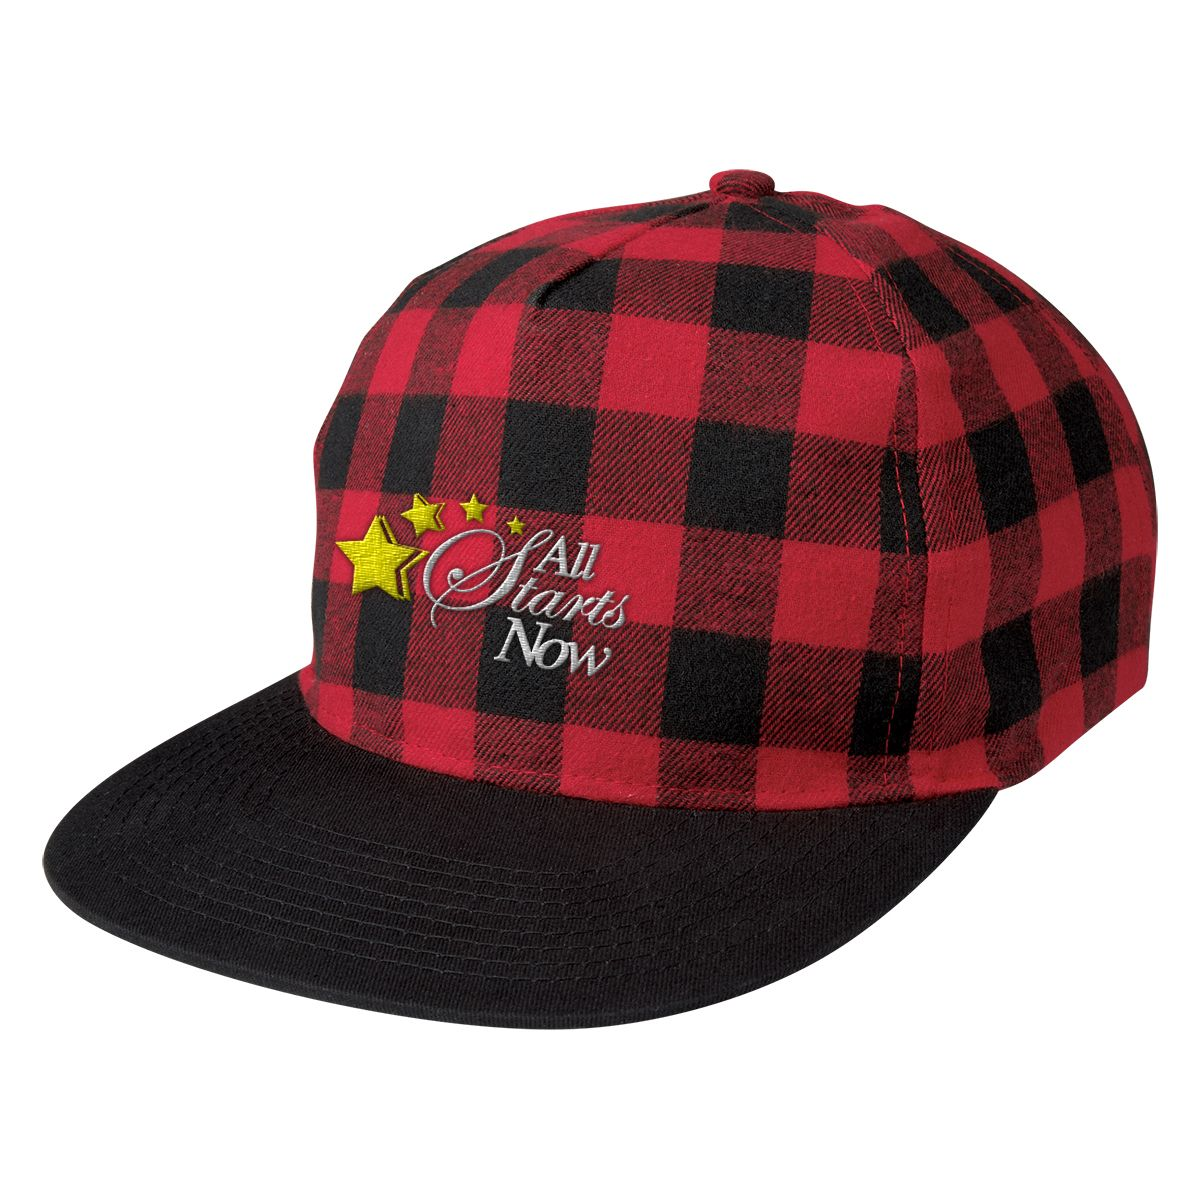 1050 Northwoods Structured Cap Hit Promotional Products